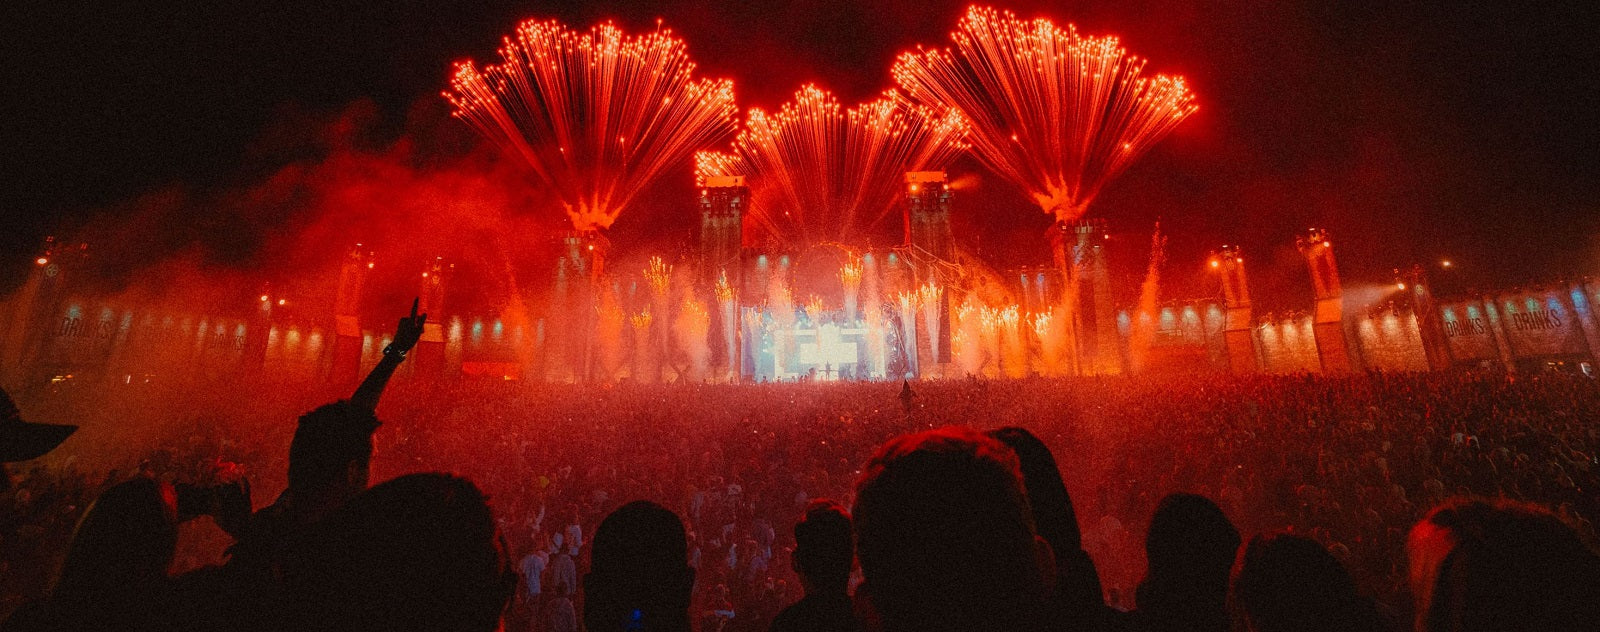 Tomorrowland feu d'artifice